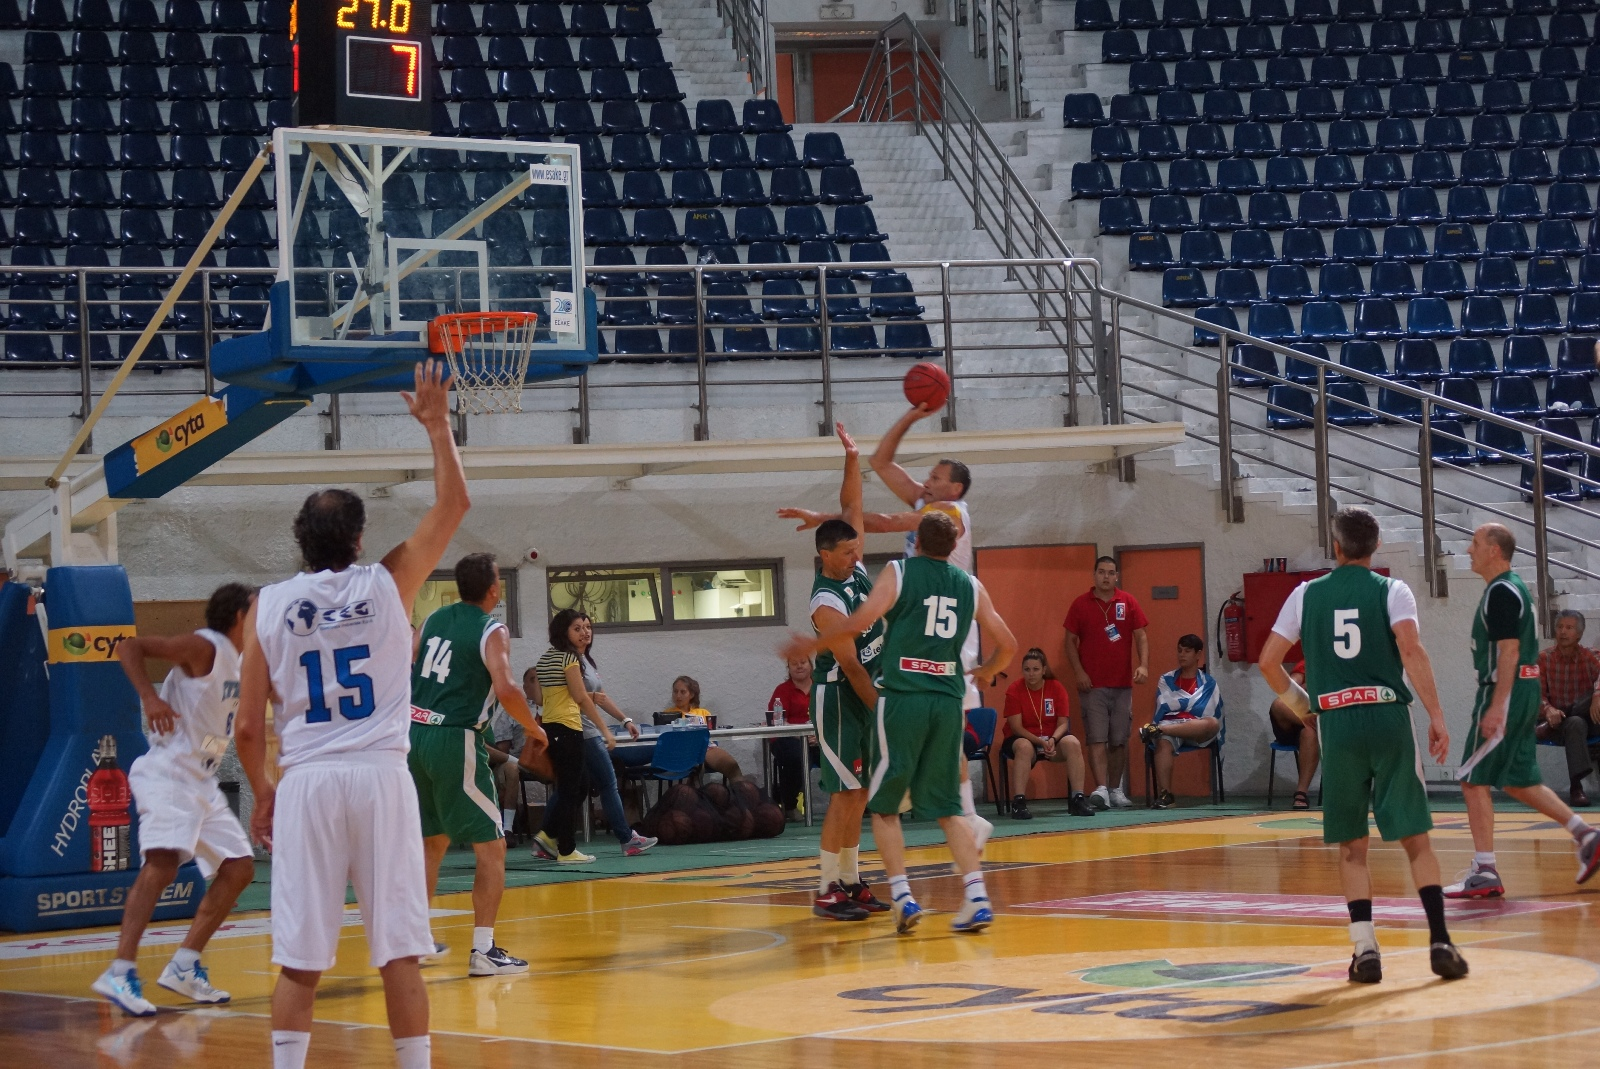 ALEXANDRION 1 |  M50+ |ITALY - LUXURIS SLOVENIA B | Final